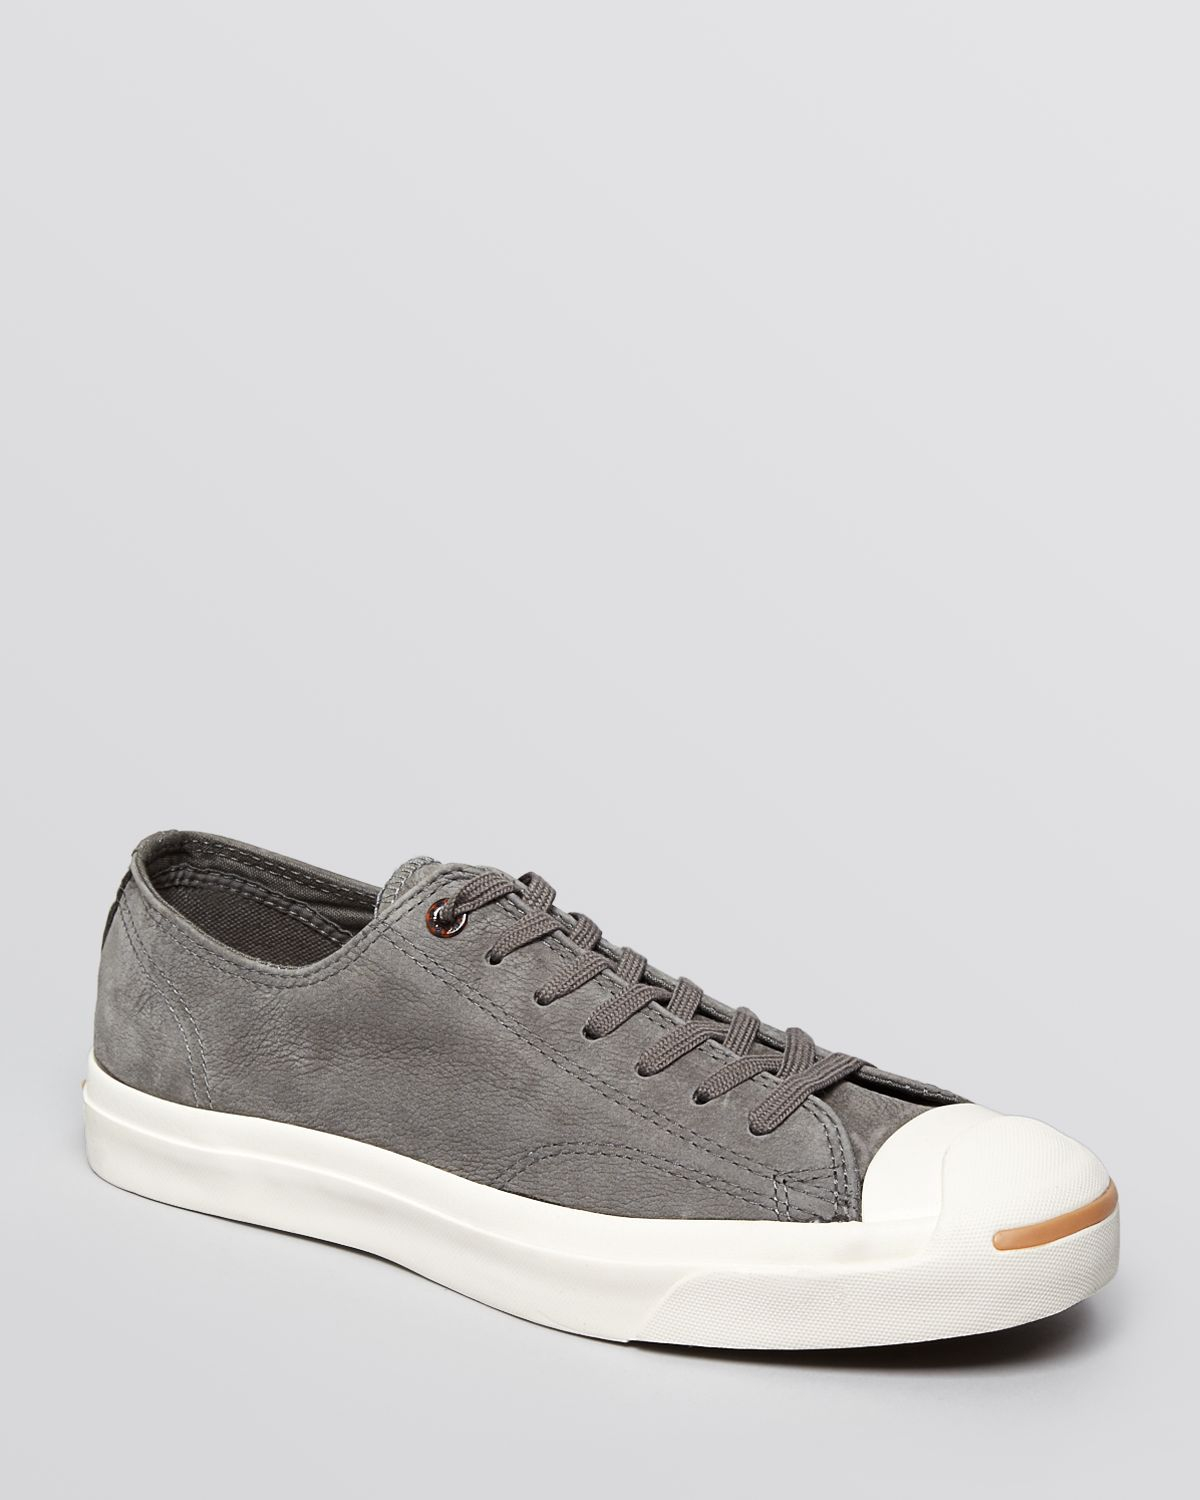 55d1f97ef4ea Lyst - Converse Jack Purcell Suede Sneakers in Gray for Men